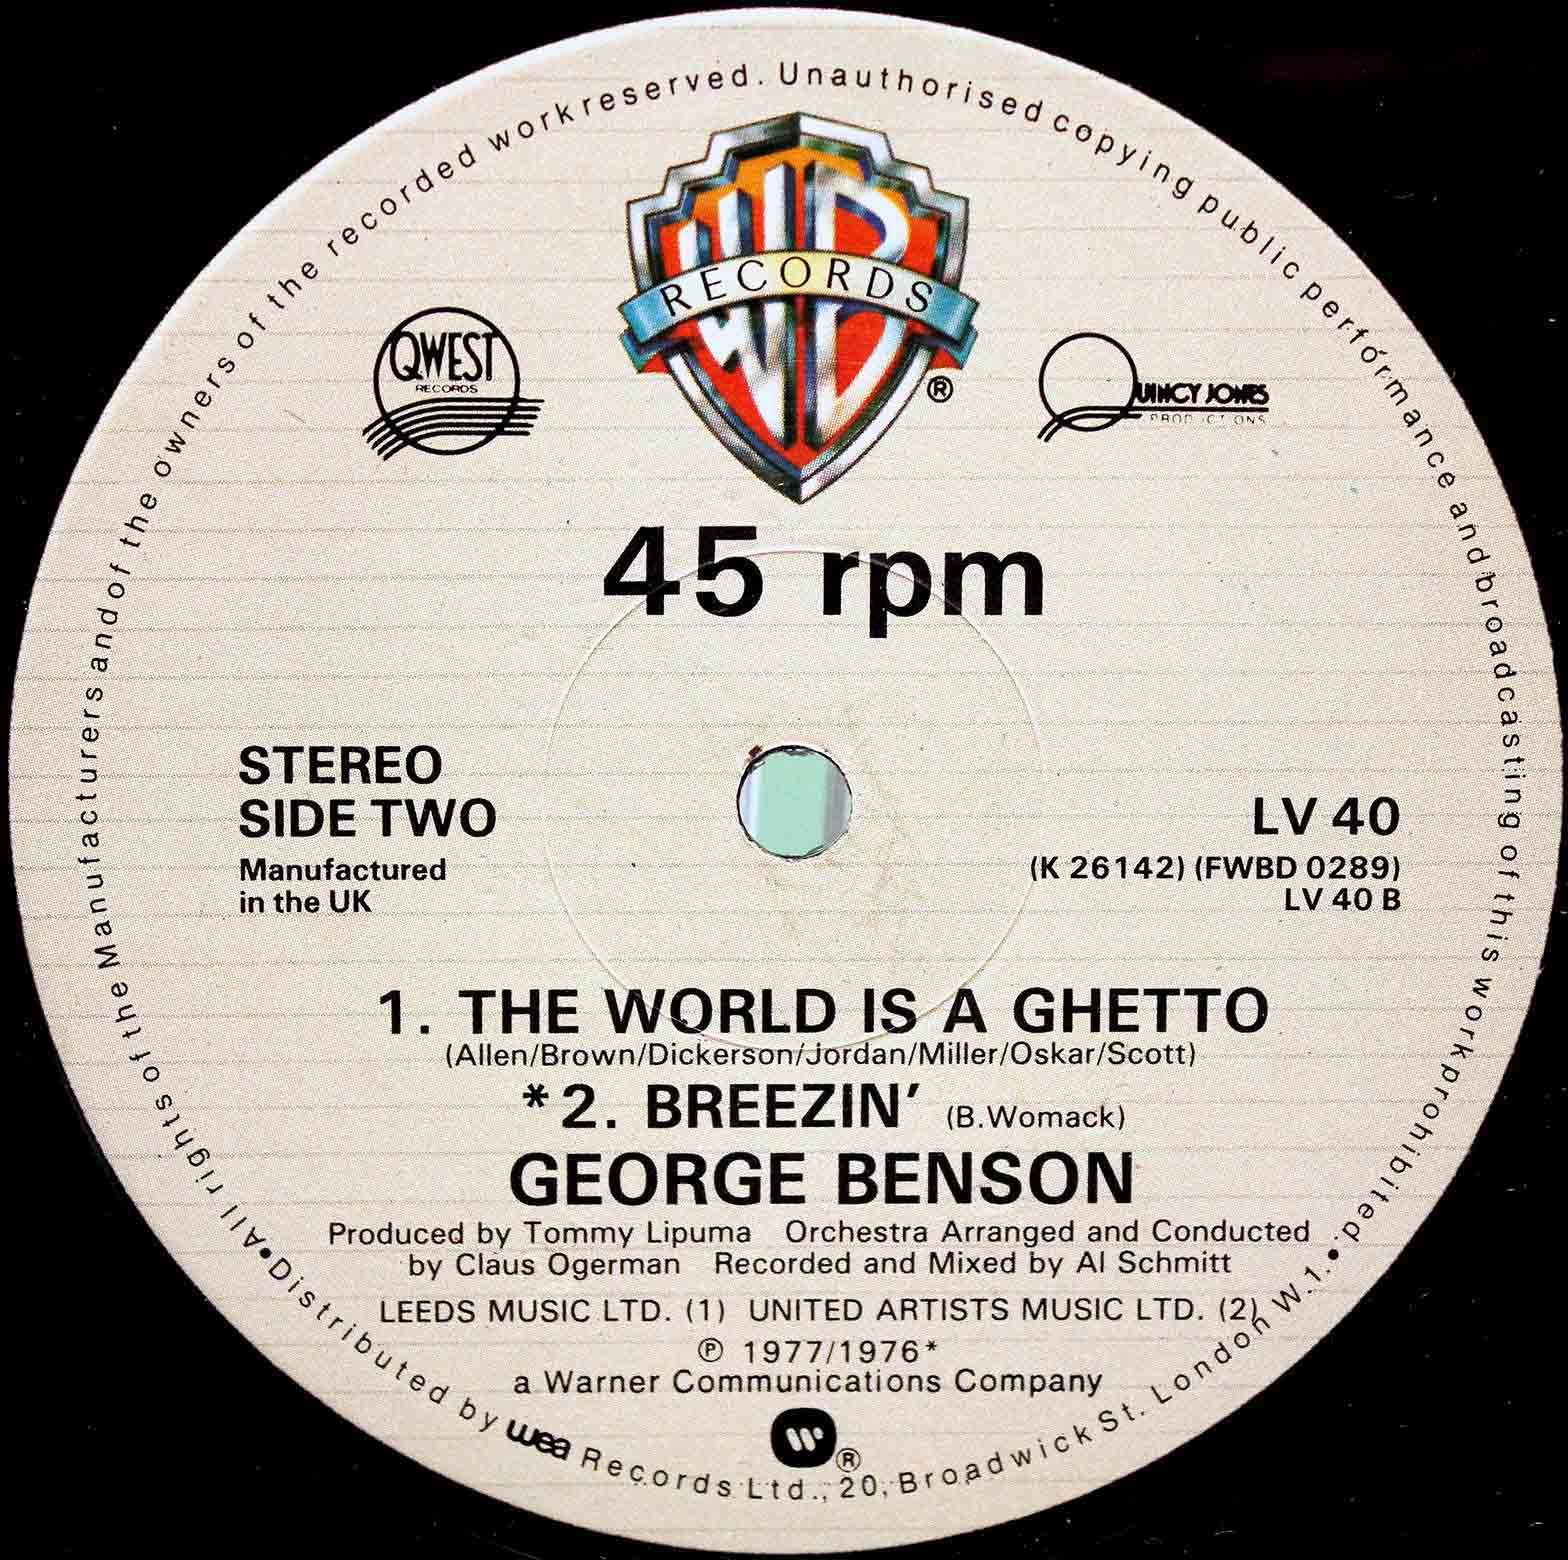 George Benson – the world is getto 02